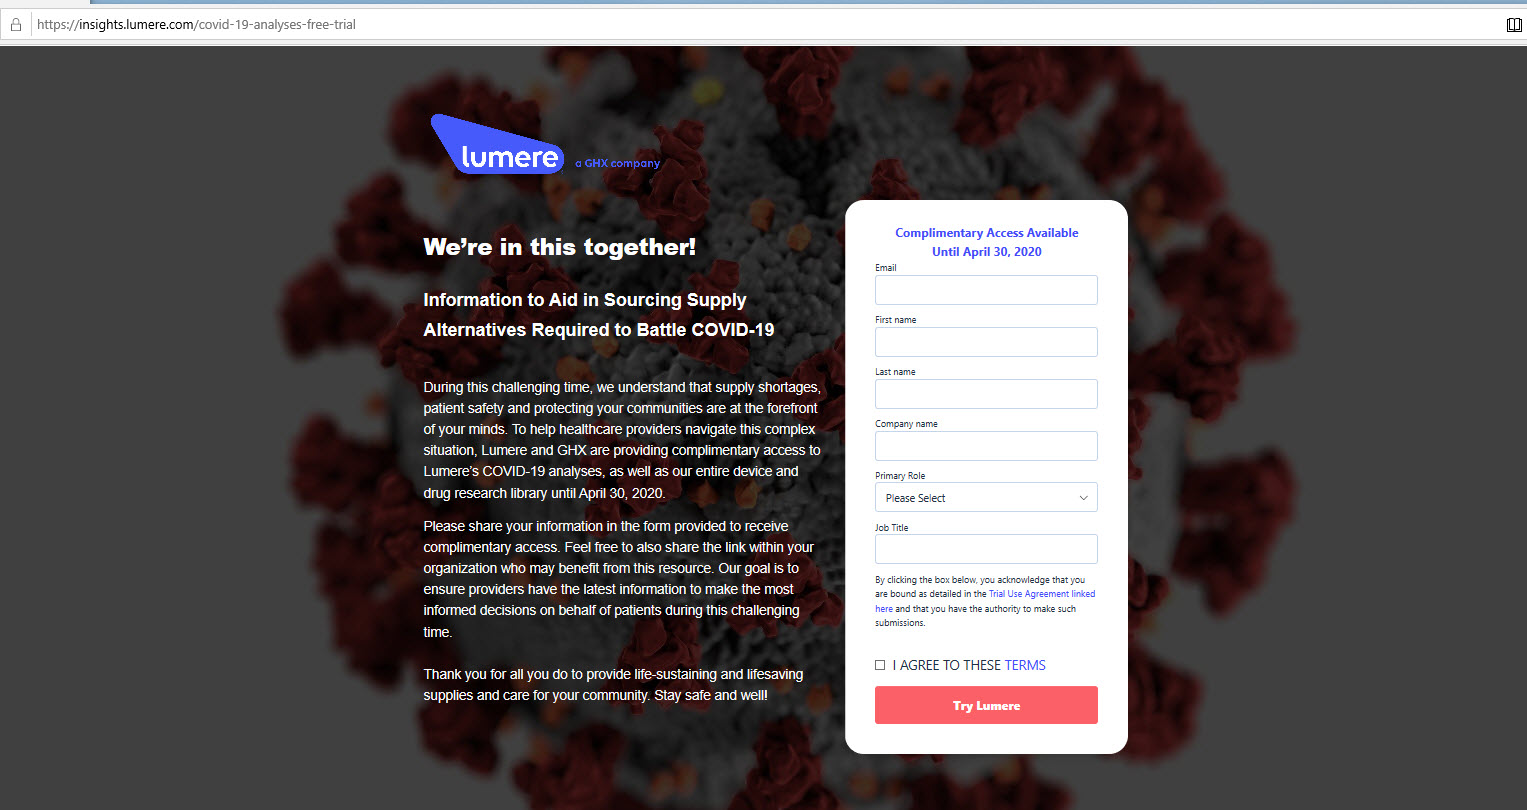 Lumere - FREE TRIAL - Information to Aid in Sourcing Supply Alternatives Required to Battle COVID-19